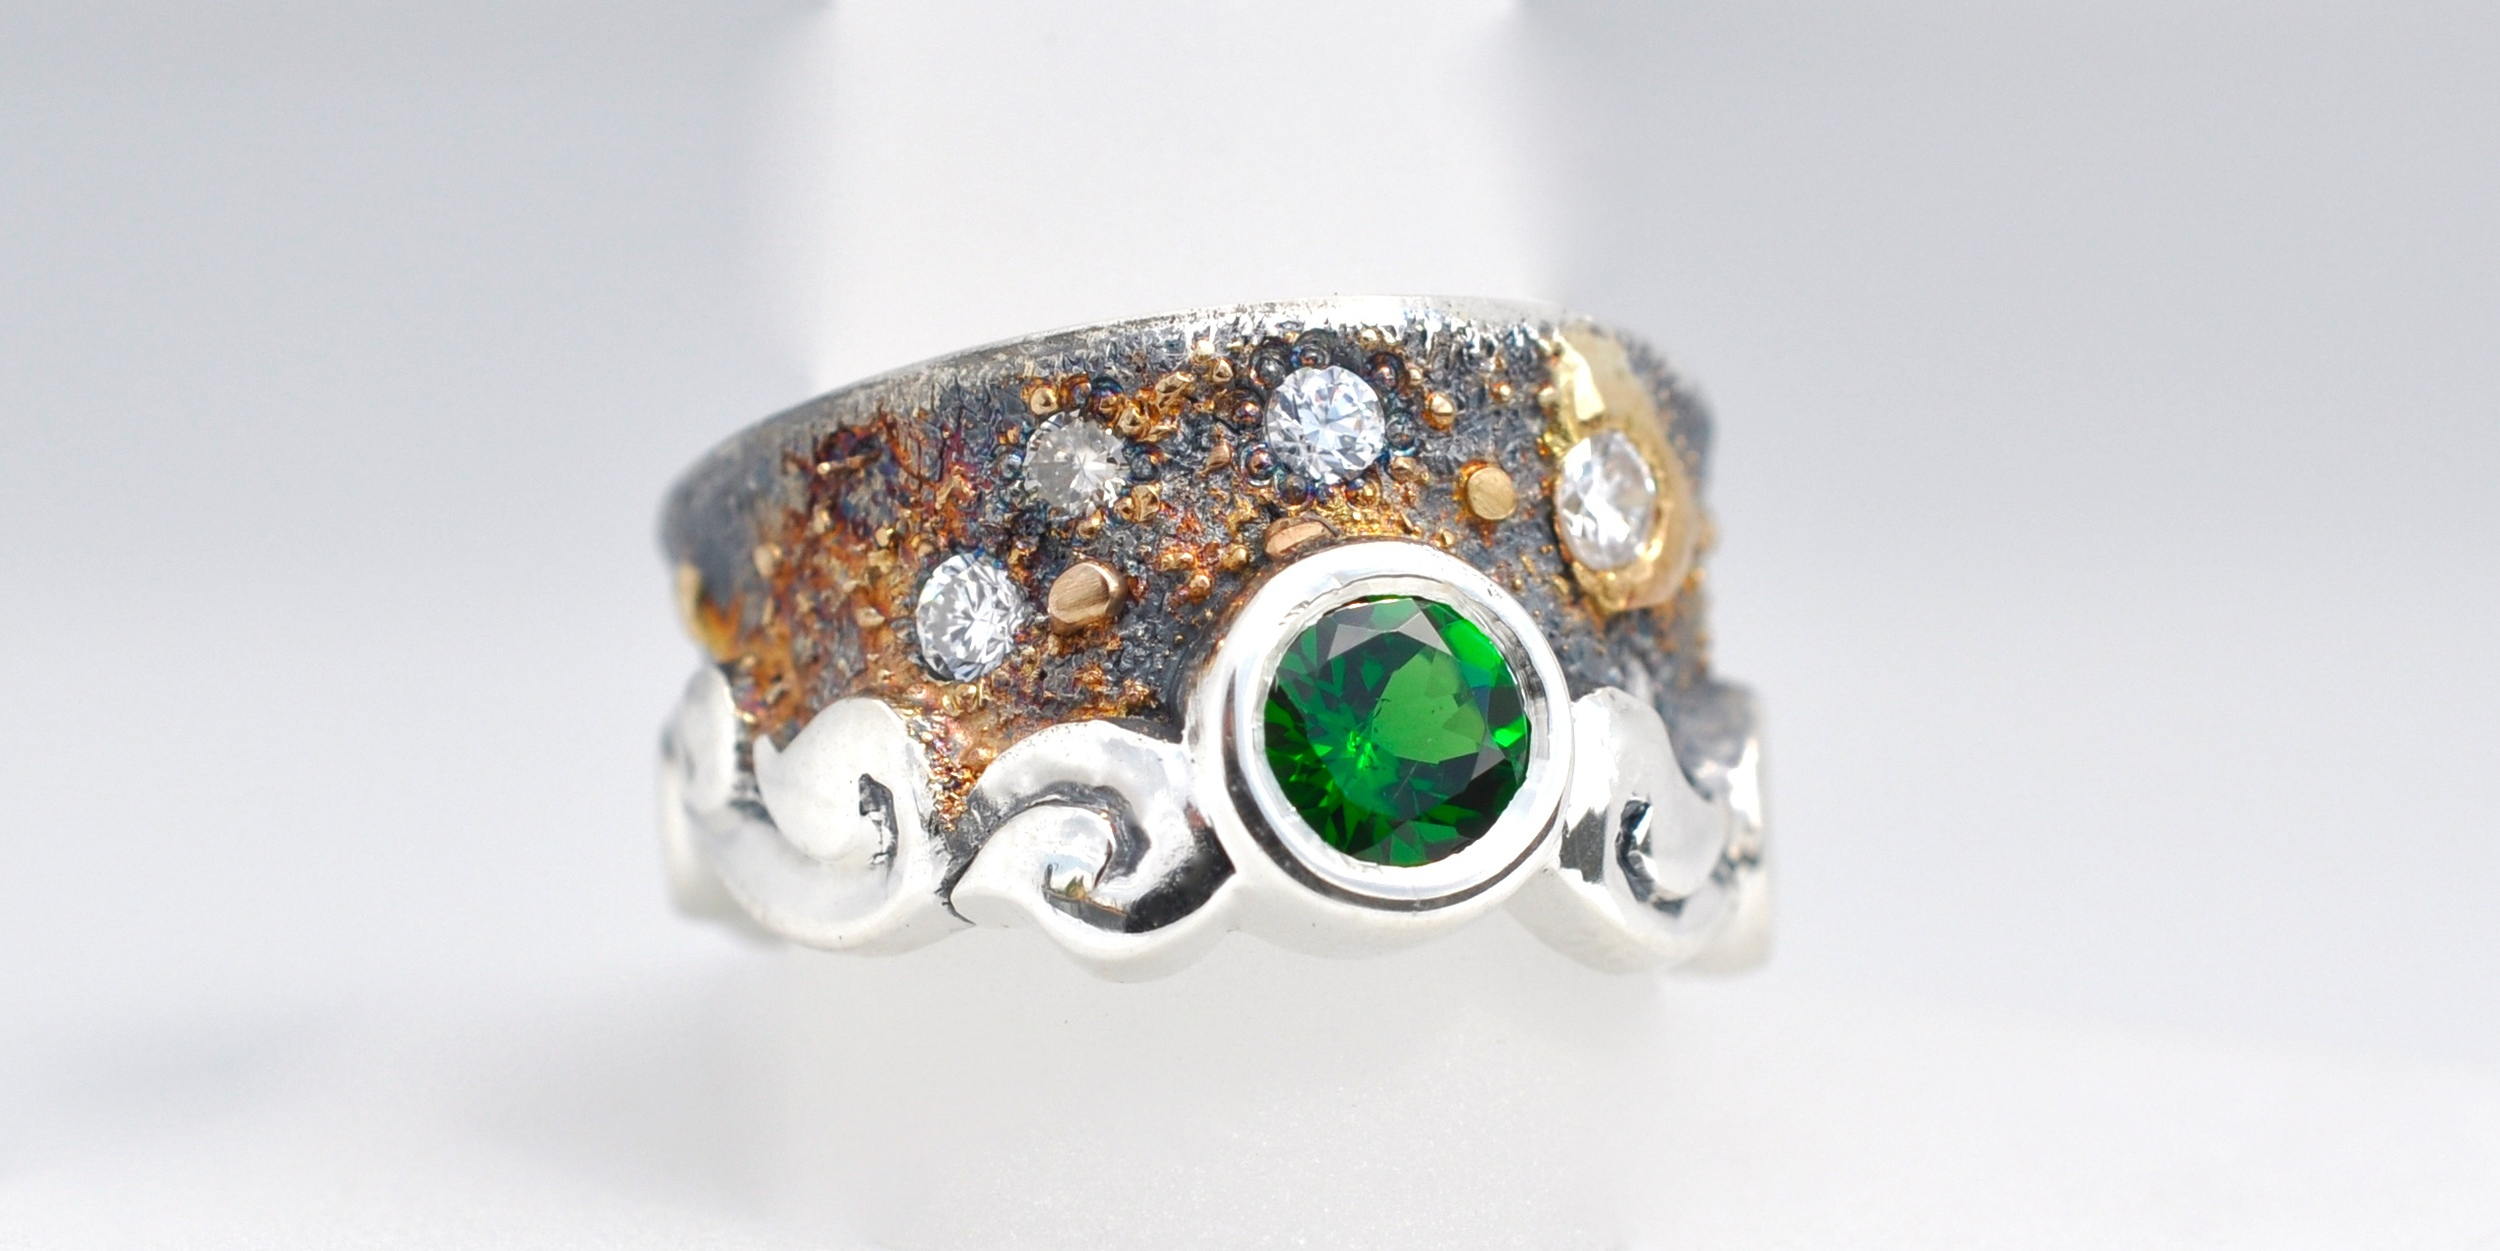 1.00 Carat Tsavorite Garnet with .45 cttw round diamond melee set in sterling silver with 18k gold fused accents.